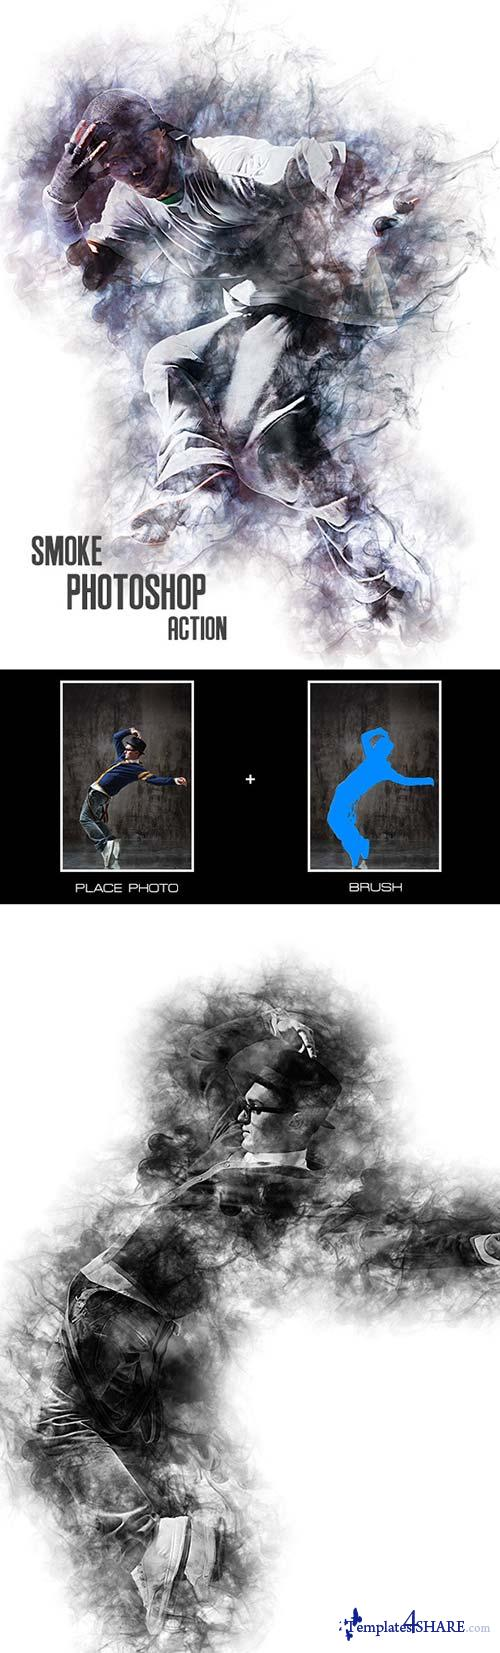 GraphicRiver Smoke - Photoshop Action